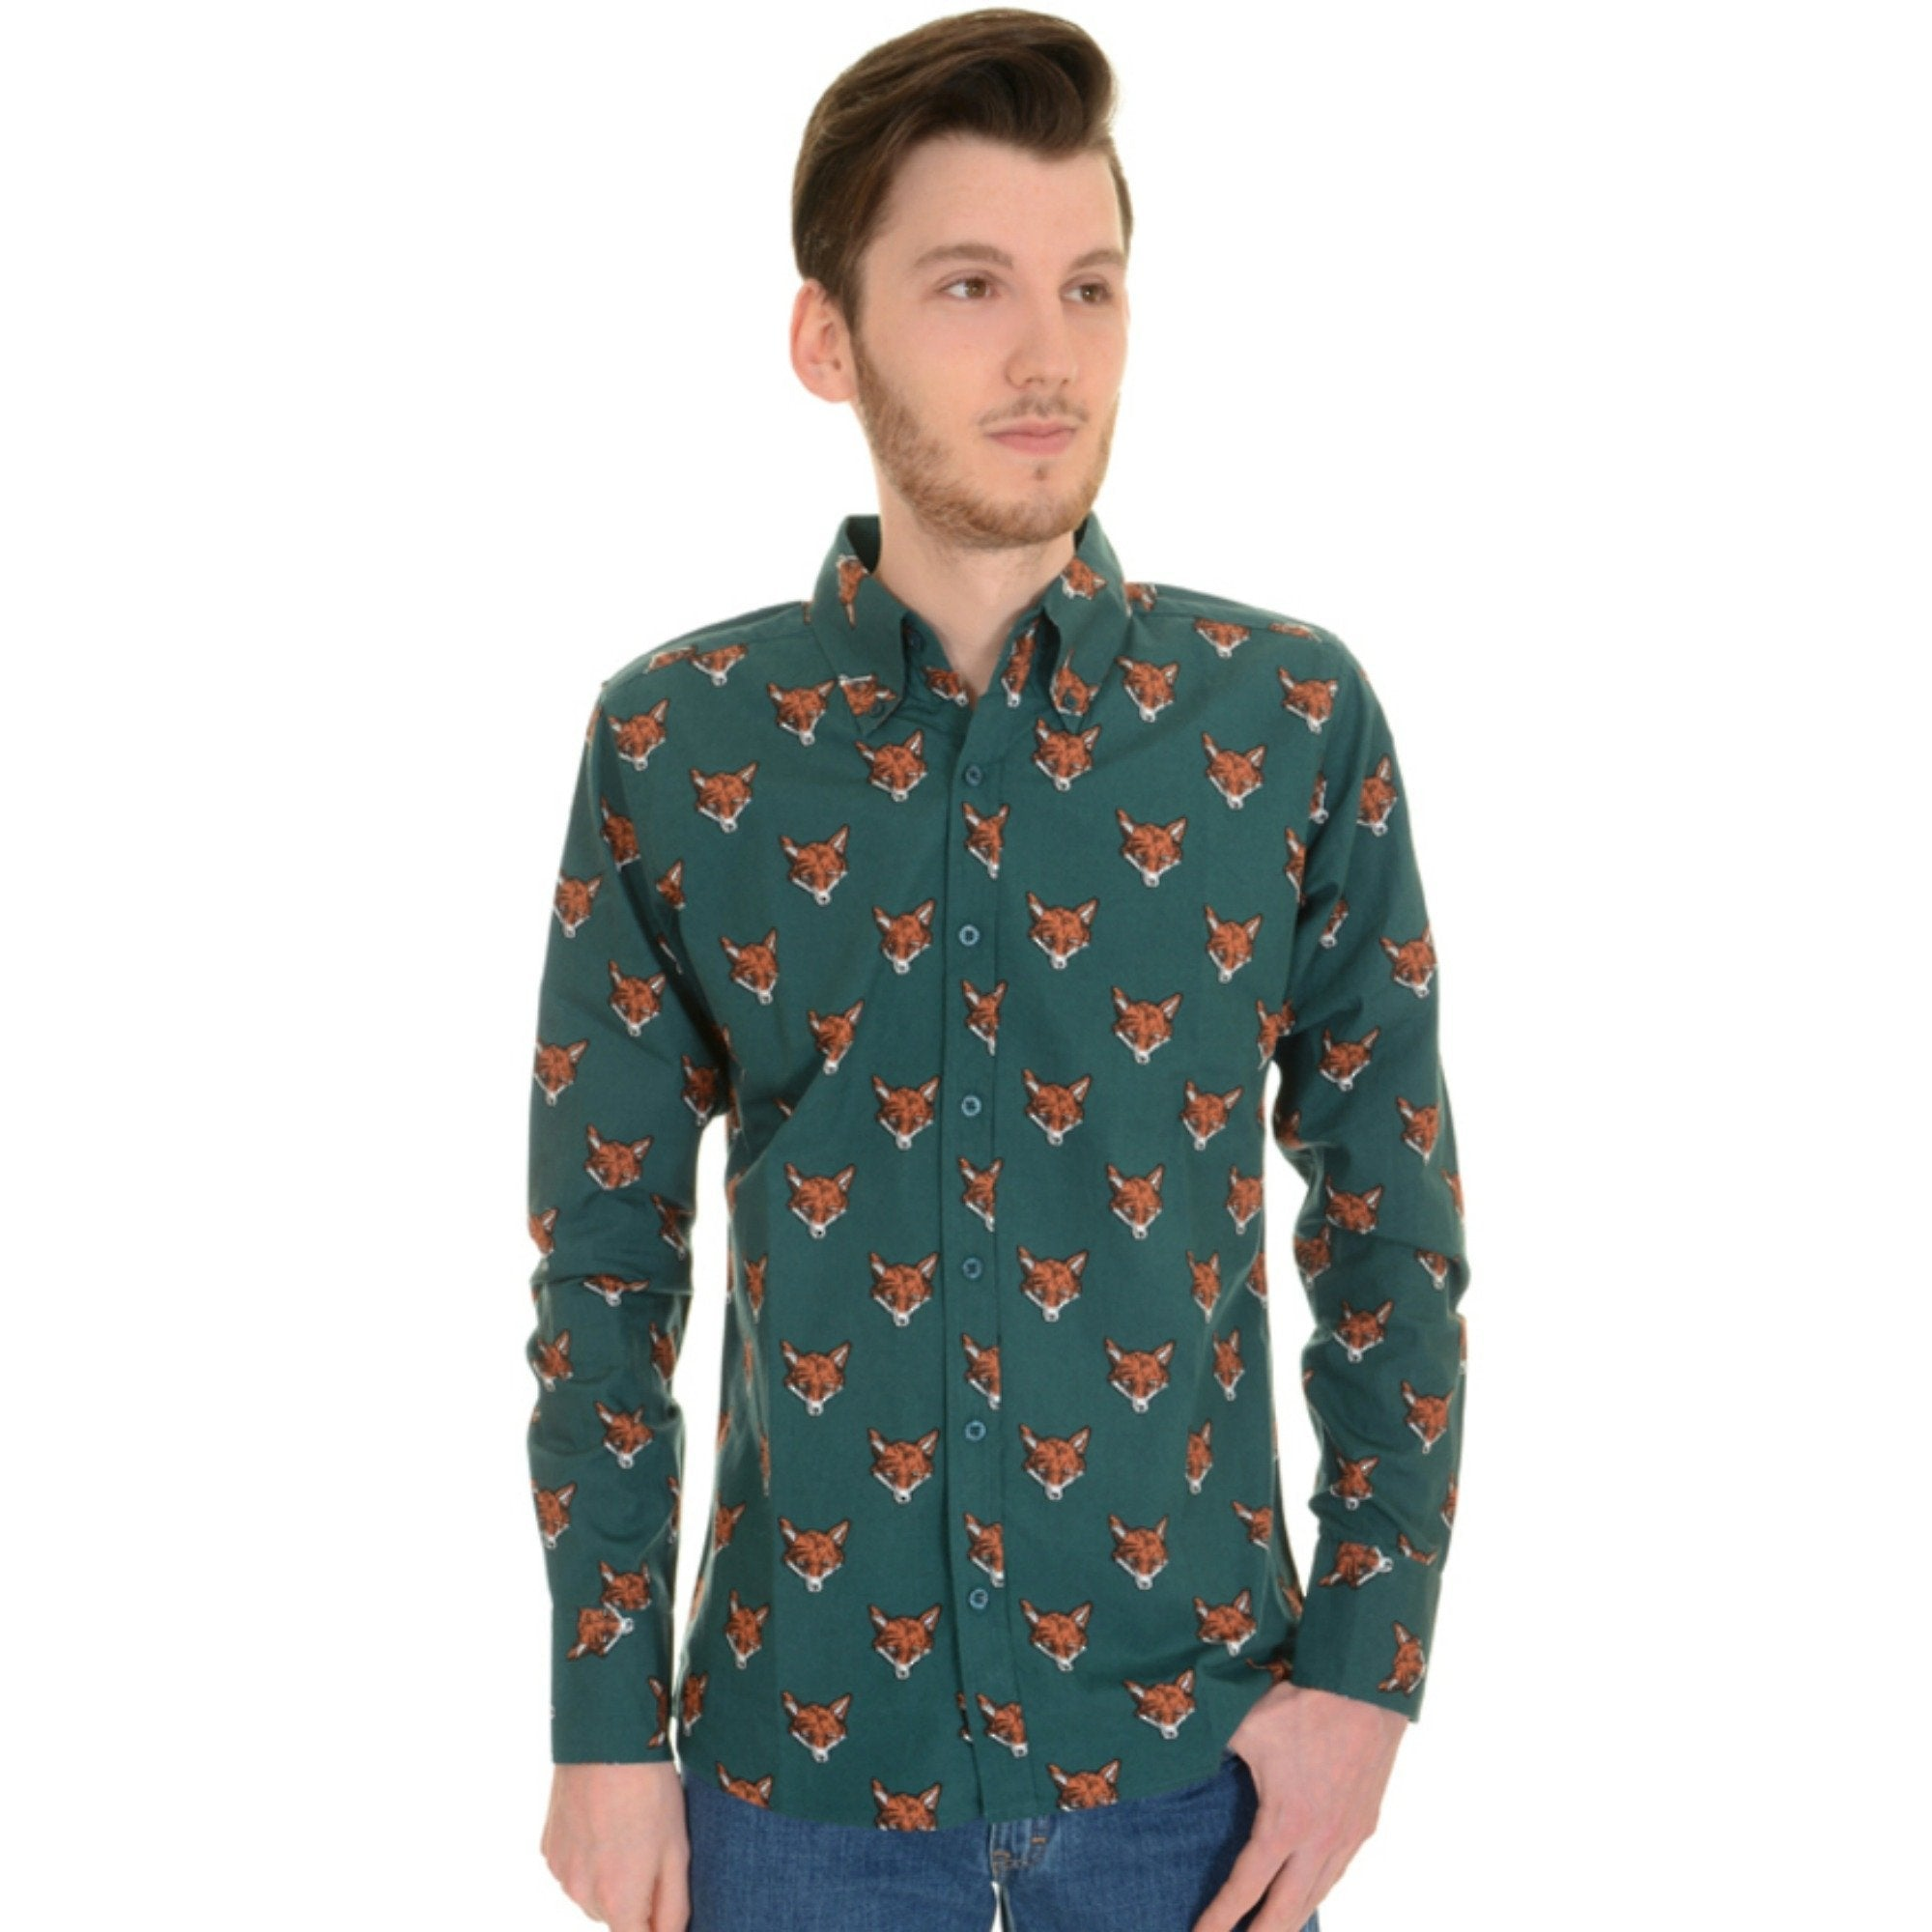 Long Sleeve Fox Print Shirt by Run and Fly - Minimum Mouse